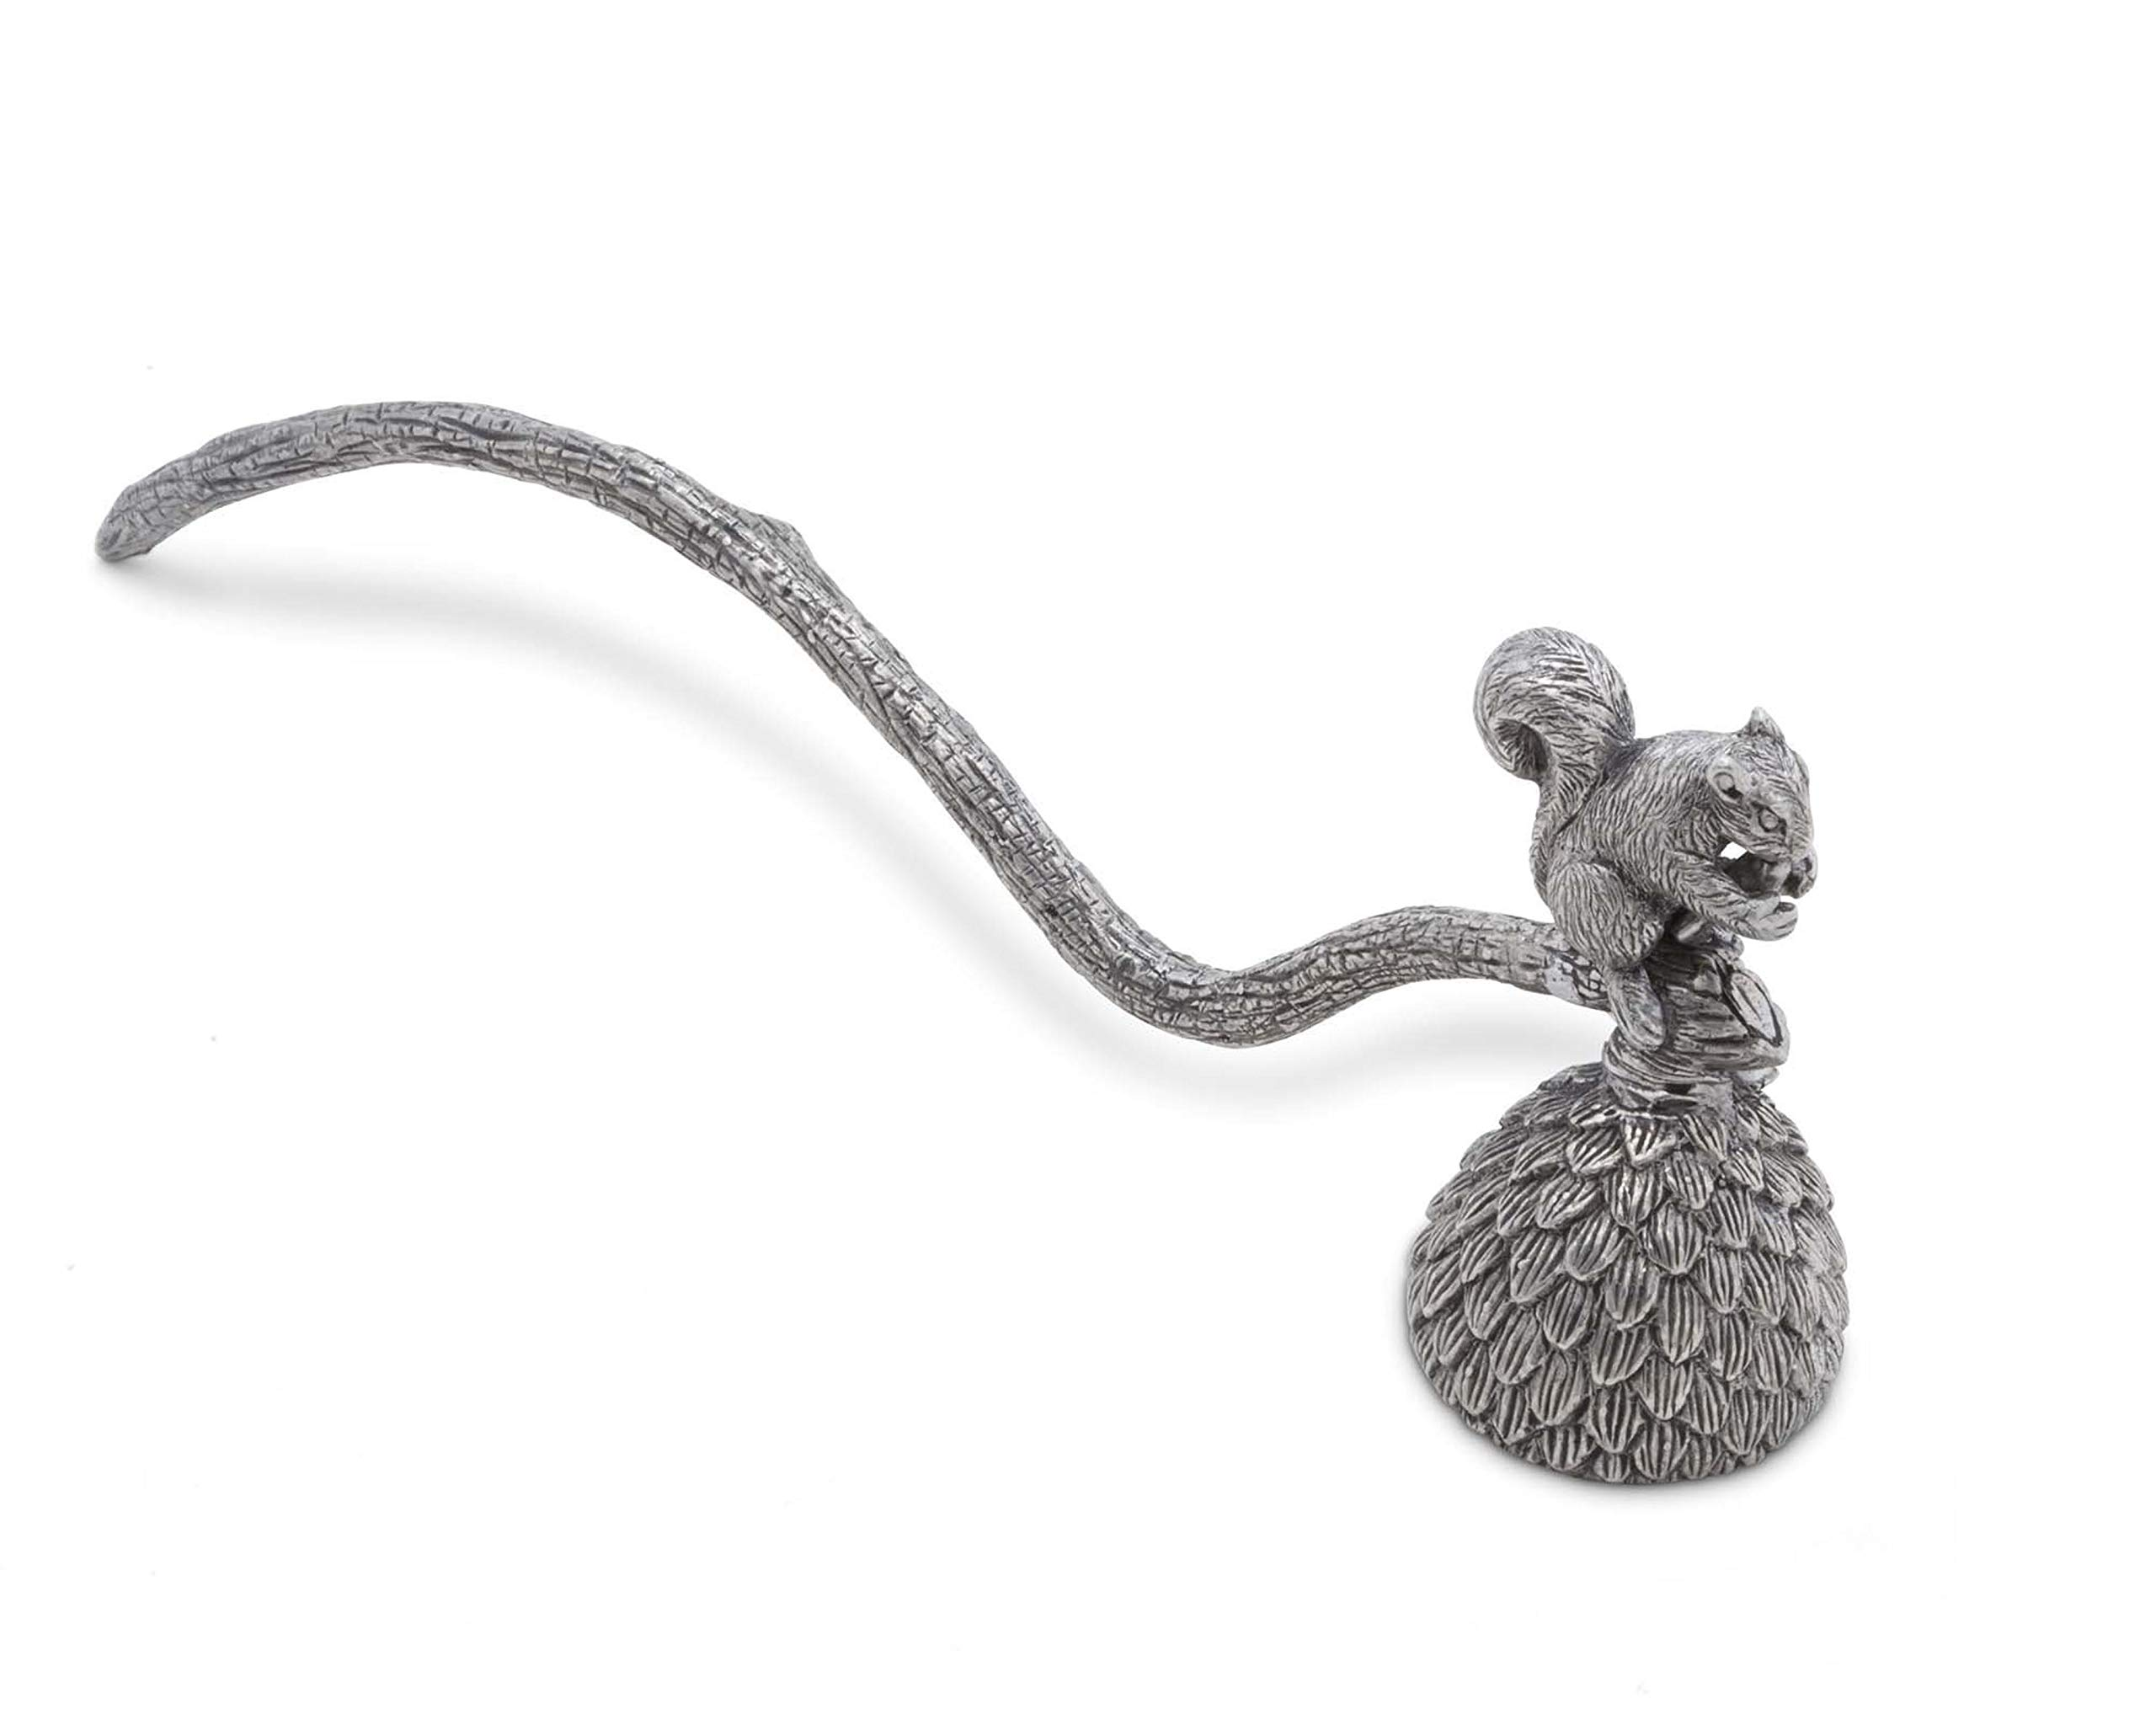 Vagabond House Pewter Squirrel Candle Snuffer 10'' Long by Vagabond House (Image #2)